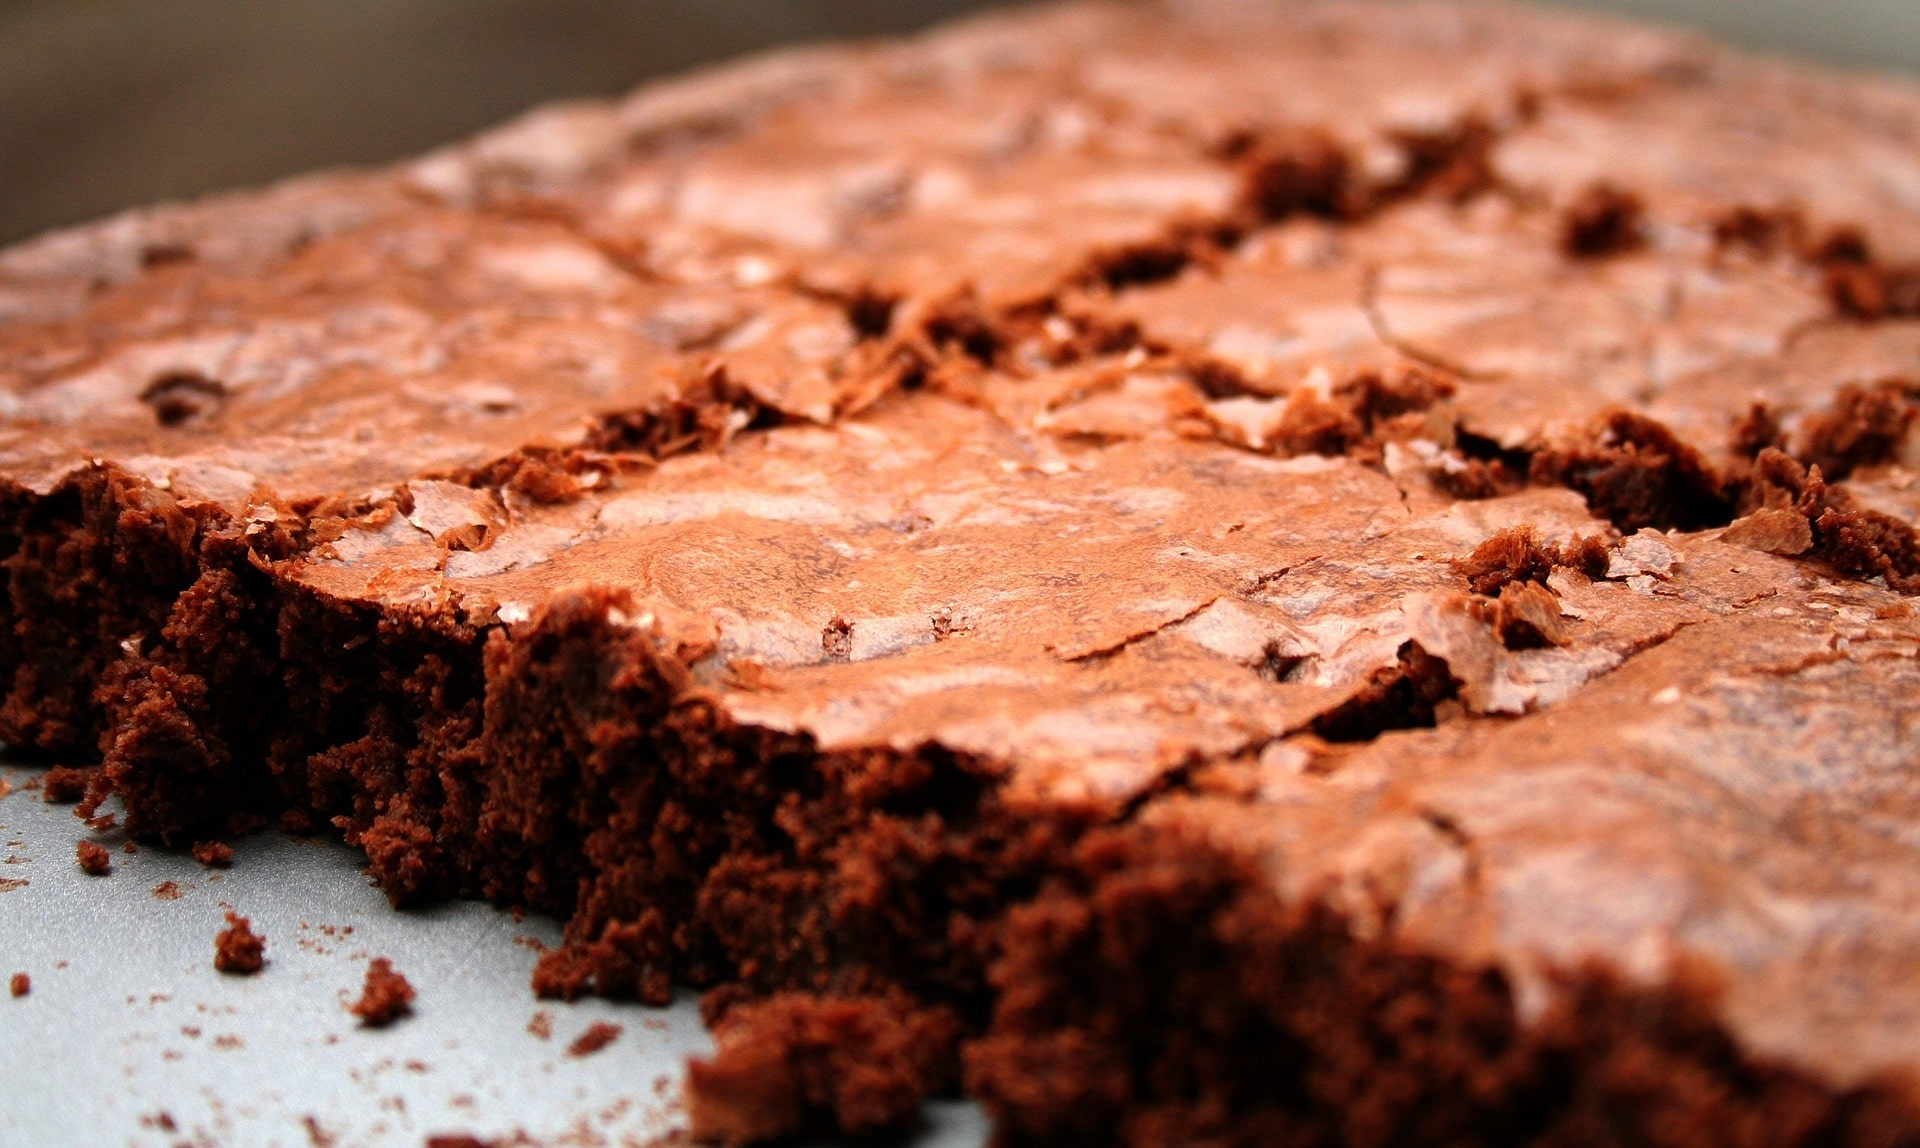 chocolate fudge brownies - These look like the perfect brownie with a thin crust on the top and nice and fudgy in the centre. This recipe from Sweetest Menu is similar to any other brownie recipe but calls for gluten free plain flour. These would make a delicious treat.*Image shown is not from the recipe provided.